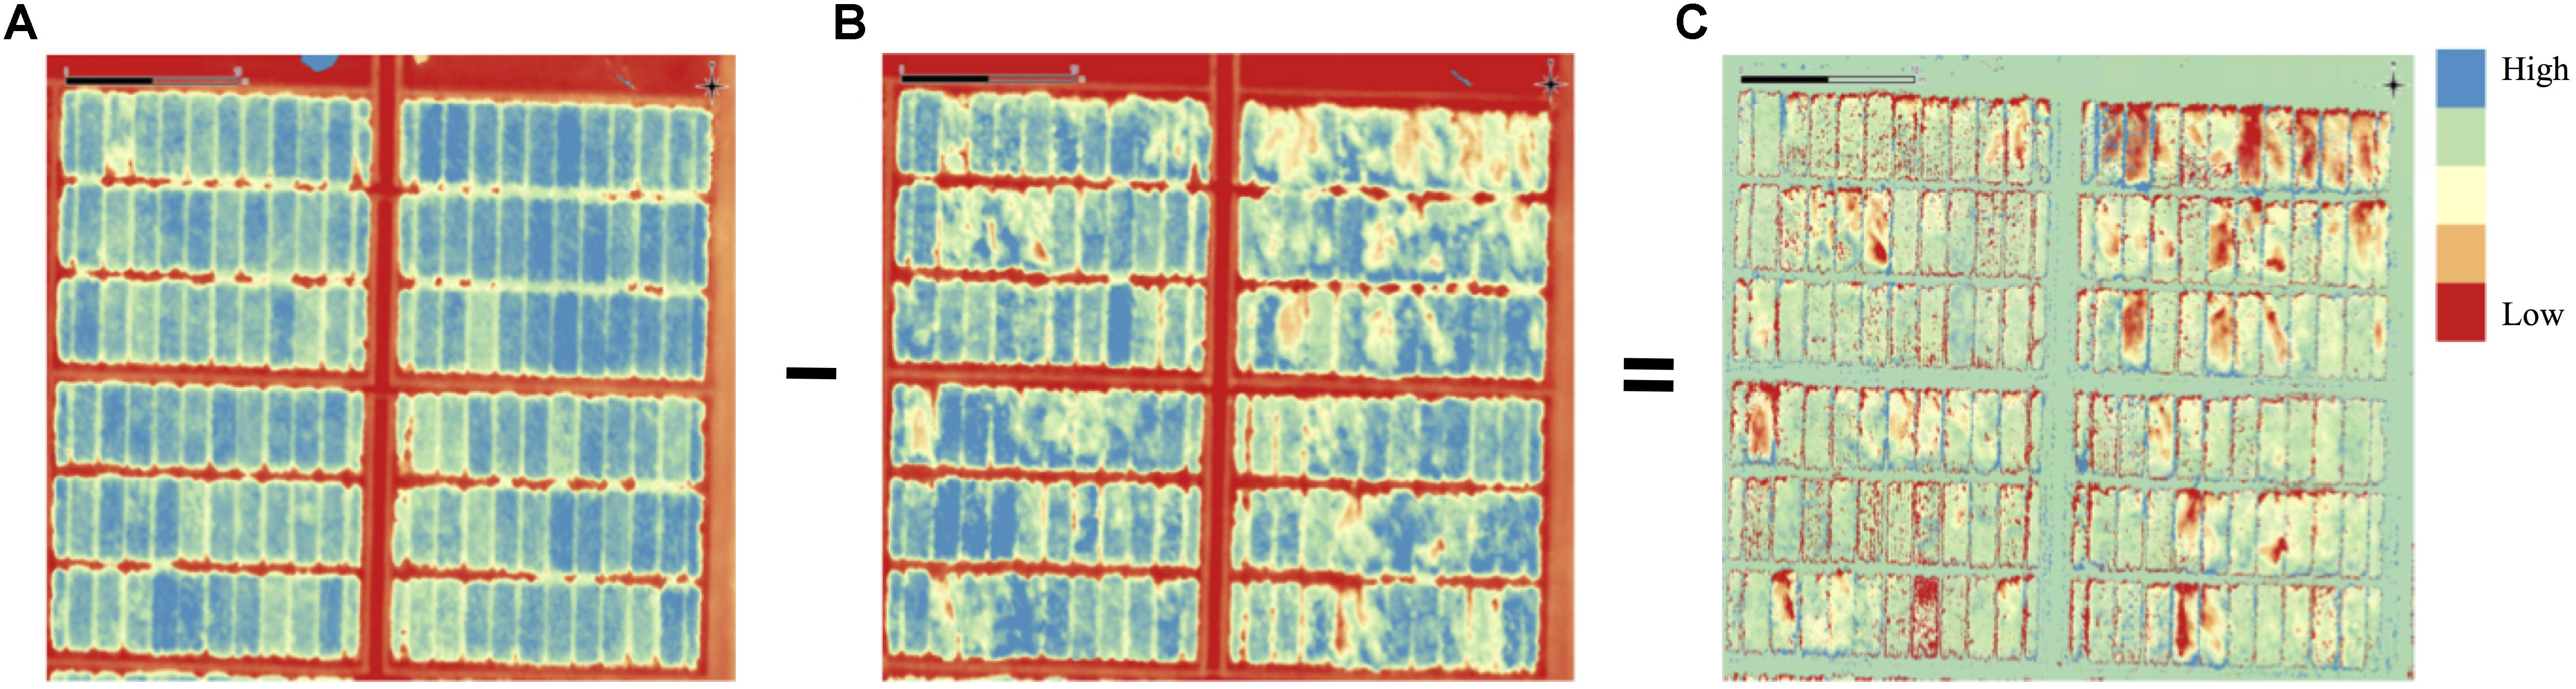 Frontiers   High-Throughput Phenotyping Enabled Genetic